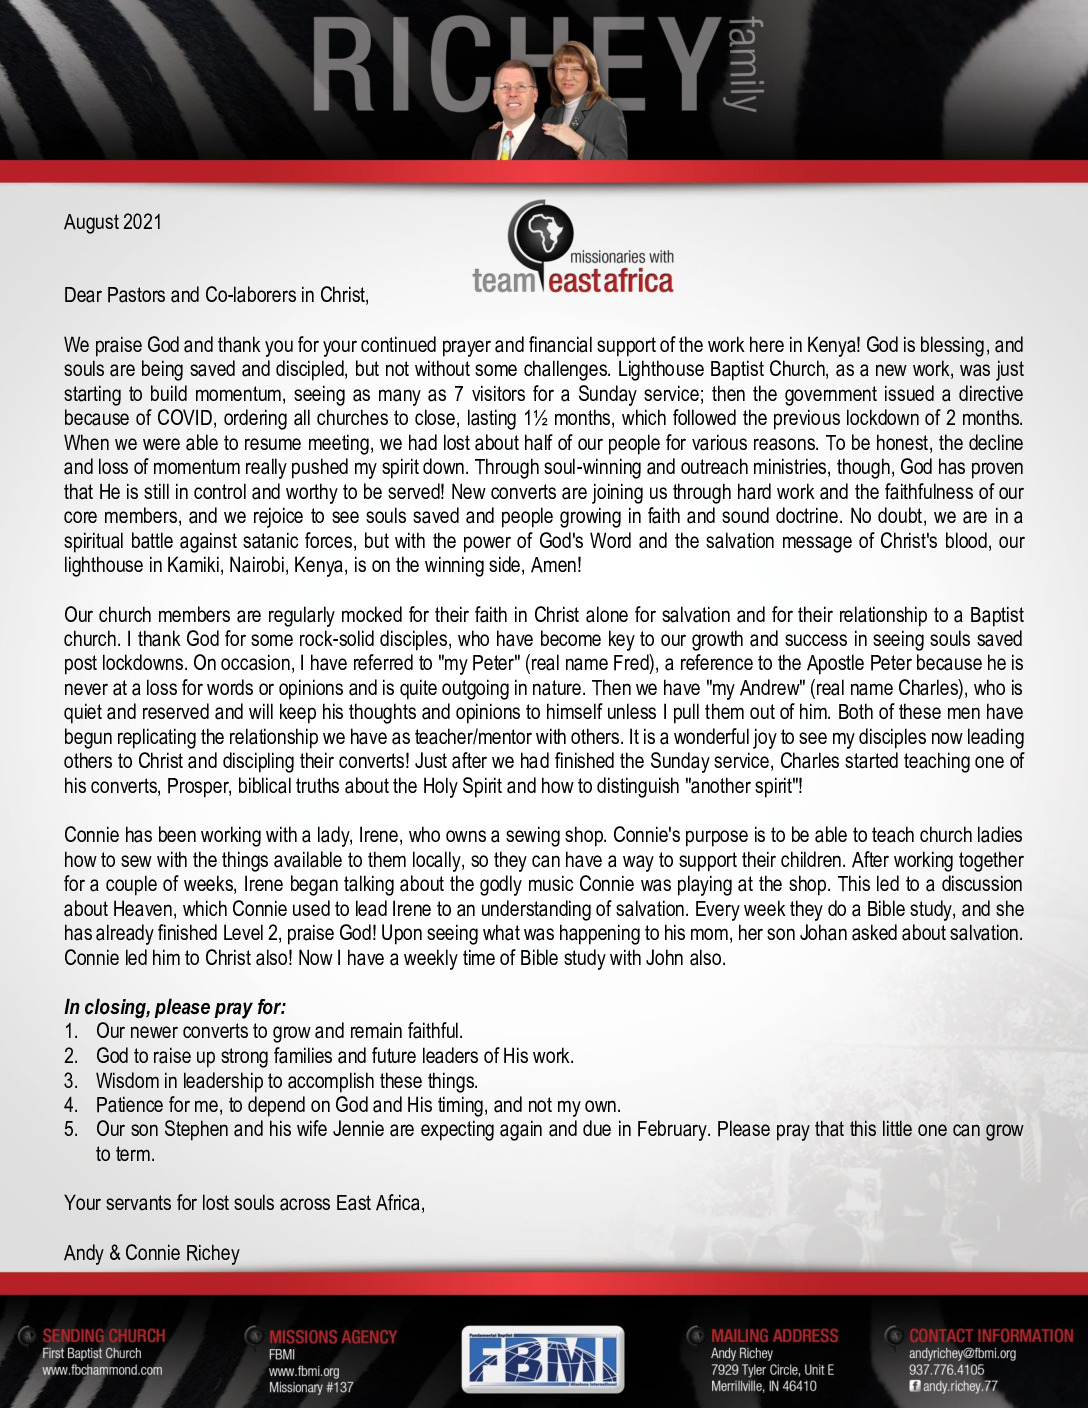 thumbnail of Andy Richey August 2021 Prayer Letter